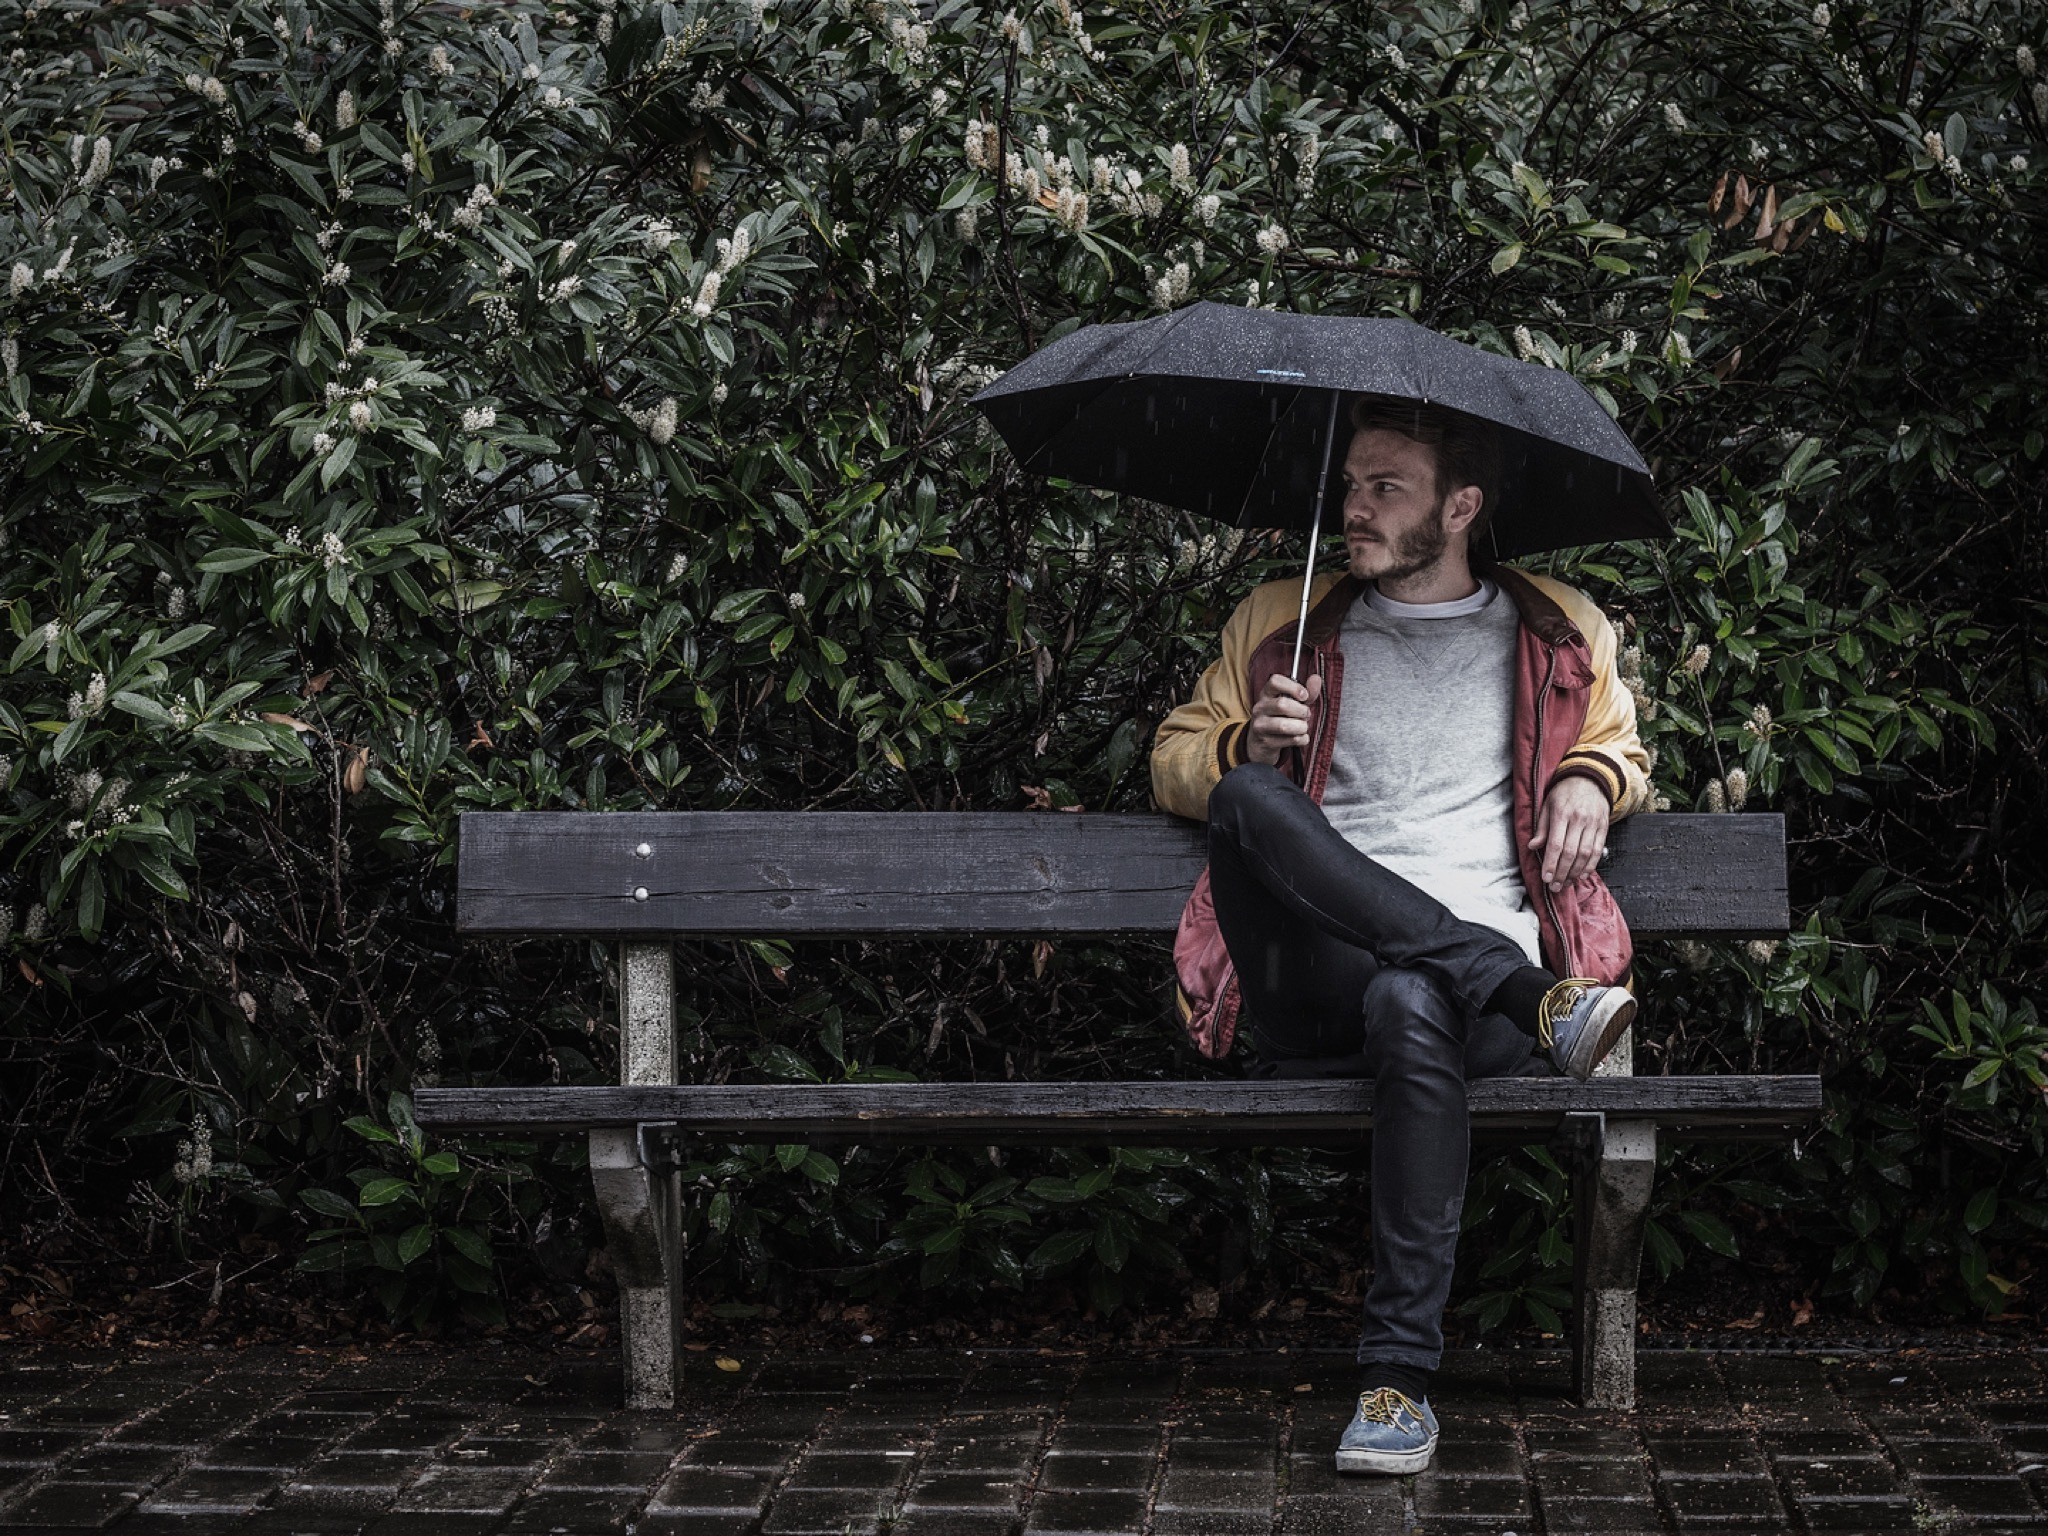 A generic image of a man sitting at a bench with an umbrella whi